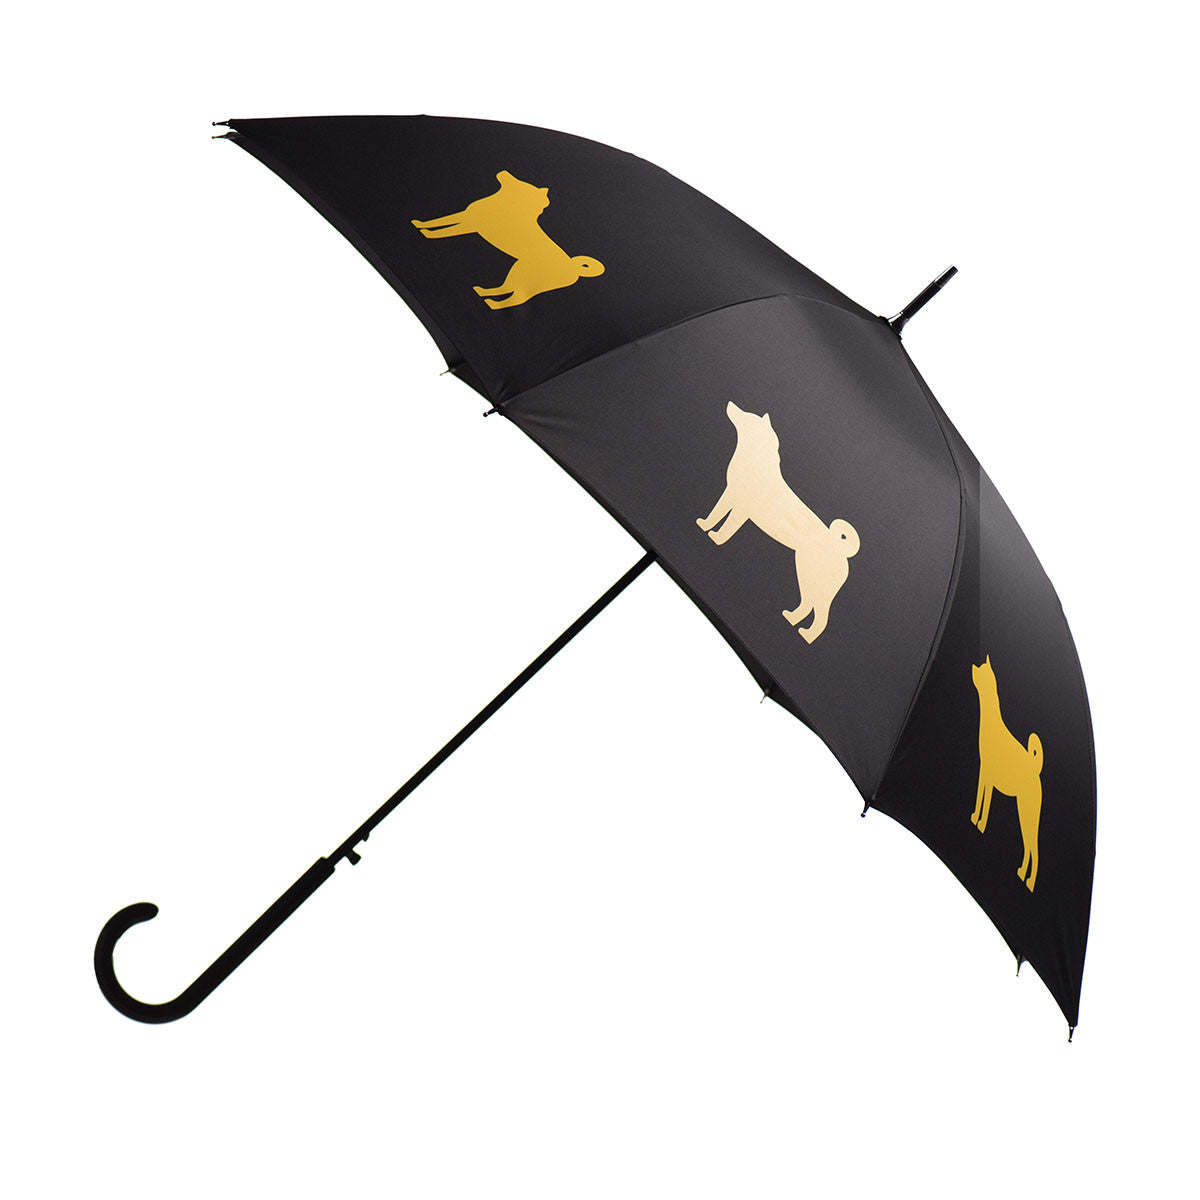 Shiba Inu Umbrella Gold on Black from San Francisco w/ sleeve and shoulder strap